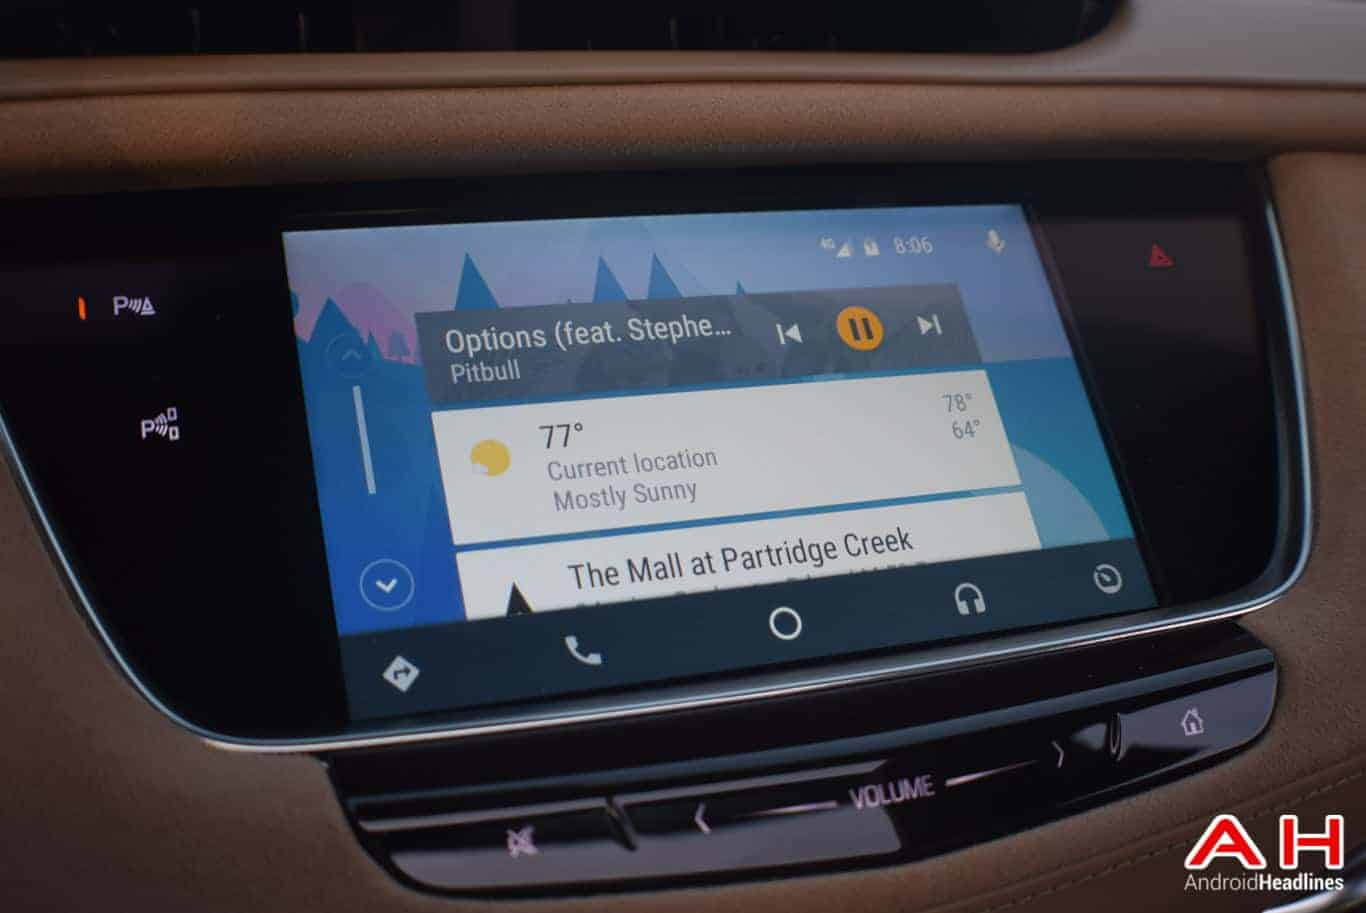 2017 Cadillac XT5 Android Auto Review AM AH 80